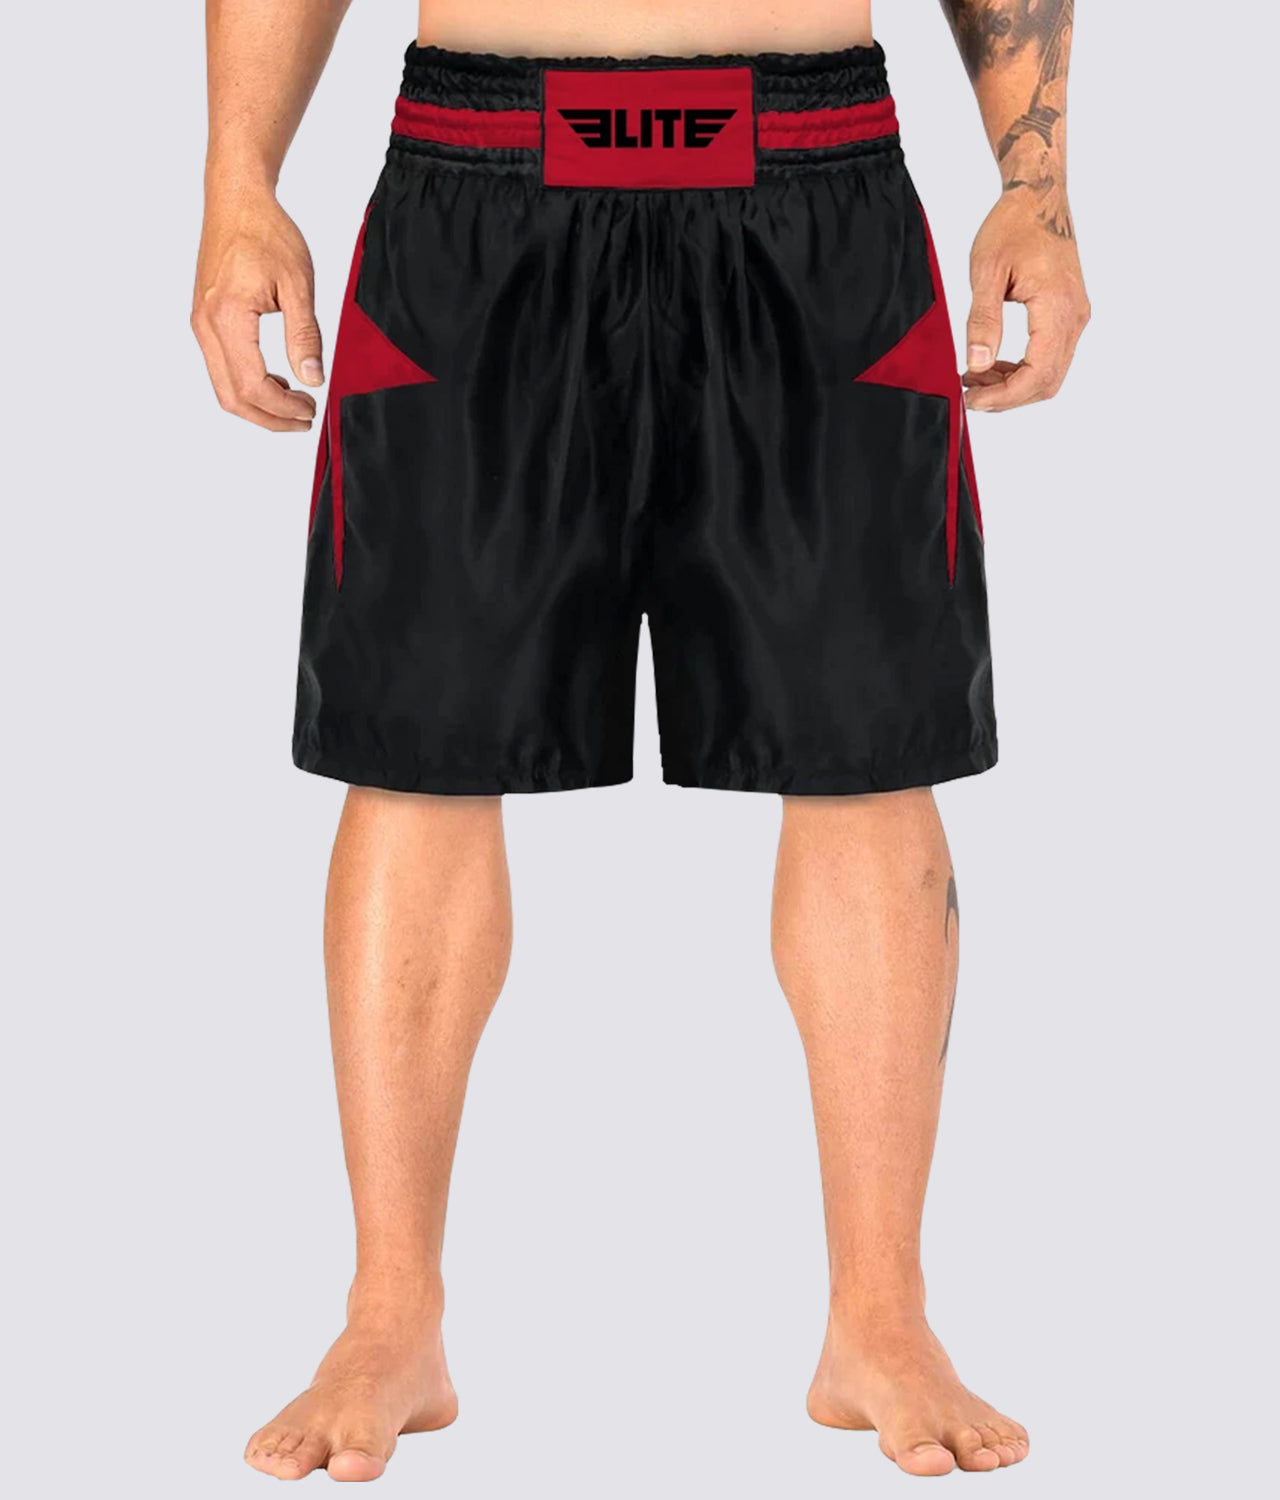 Elite Sports Star Series Sublimation Extreme Softness Black/Red Boxing Shorts